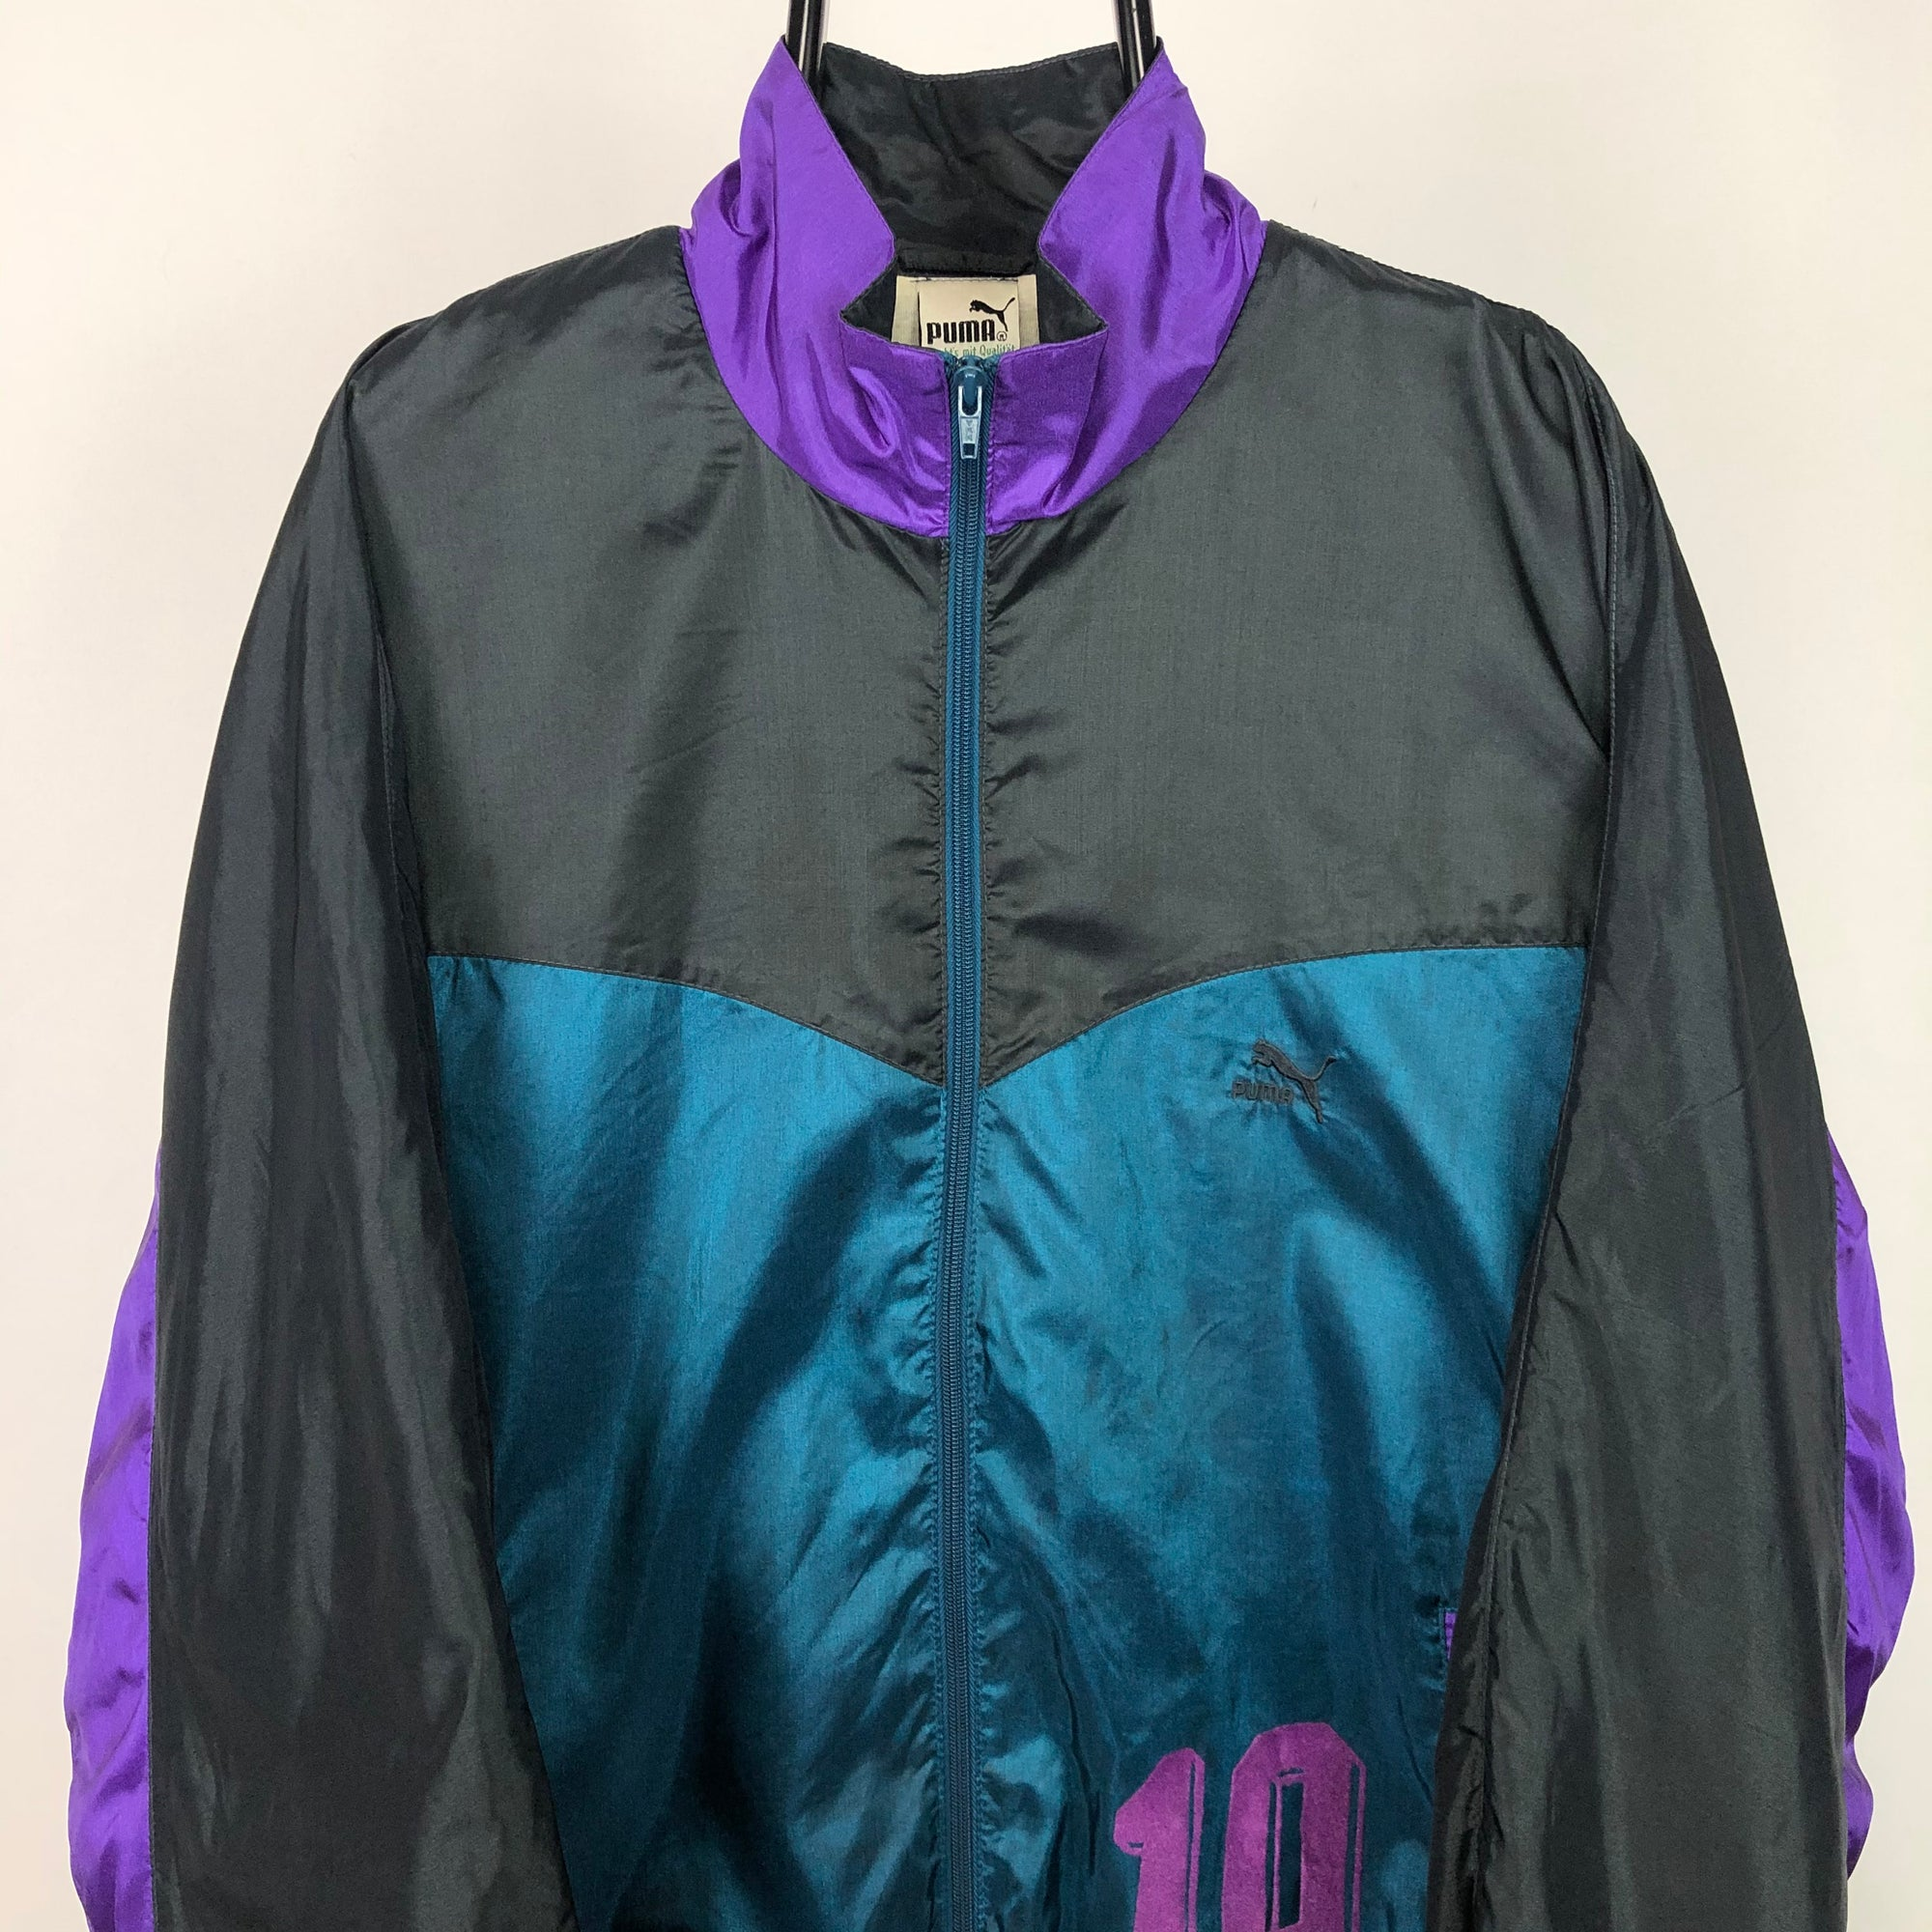 Vintage 90 Puma Track Jacket - Men's Large/Women's XL